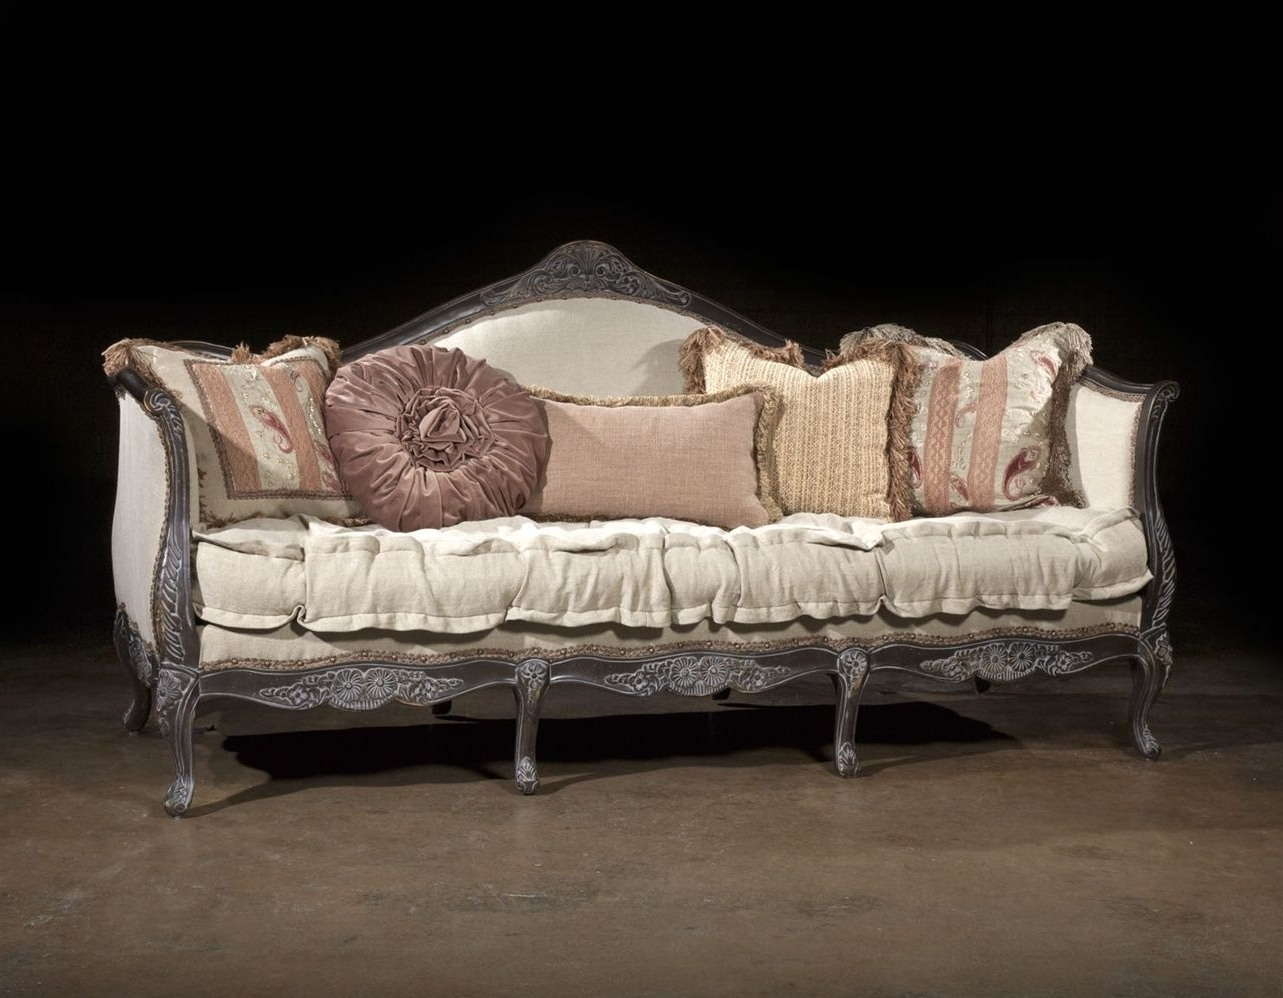 French Style Sofas For Best And Newest Google Image Result For Http://a248.e (View 16 of 20)